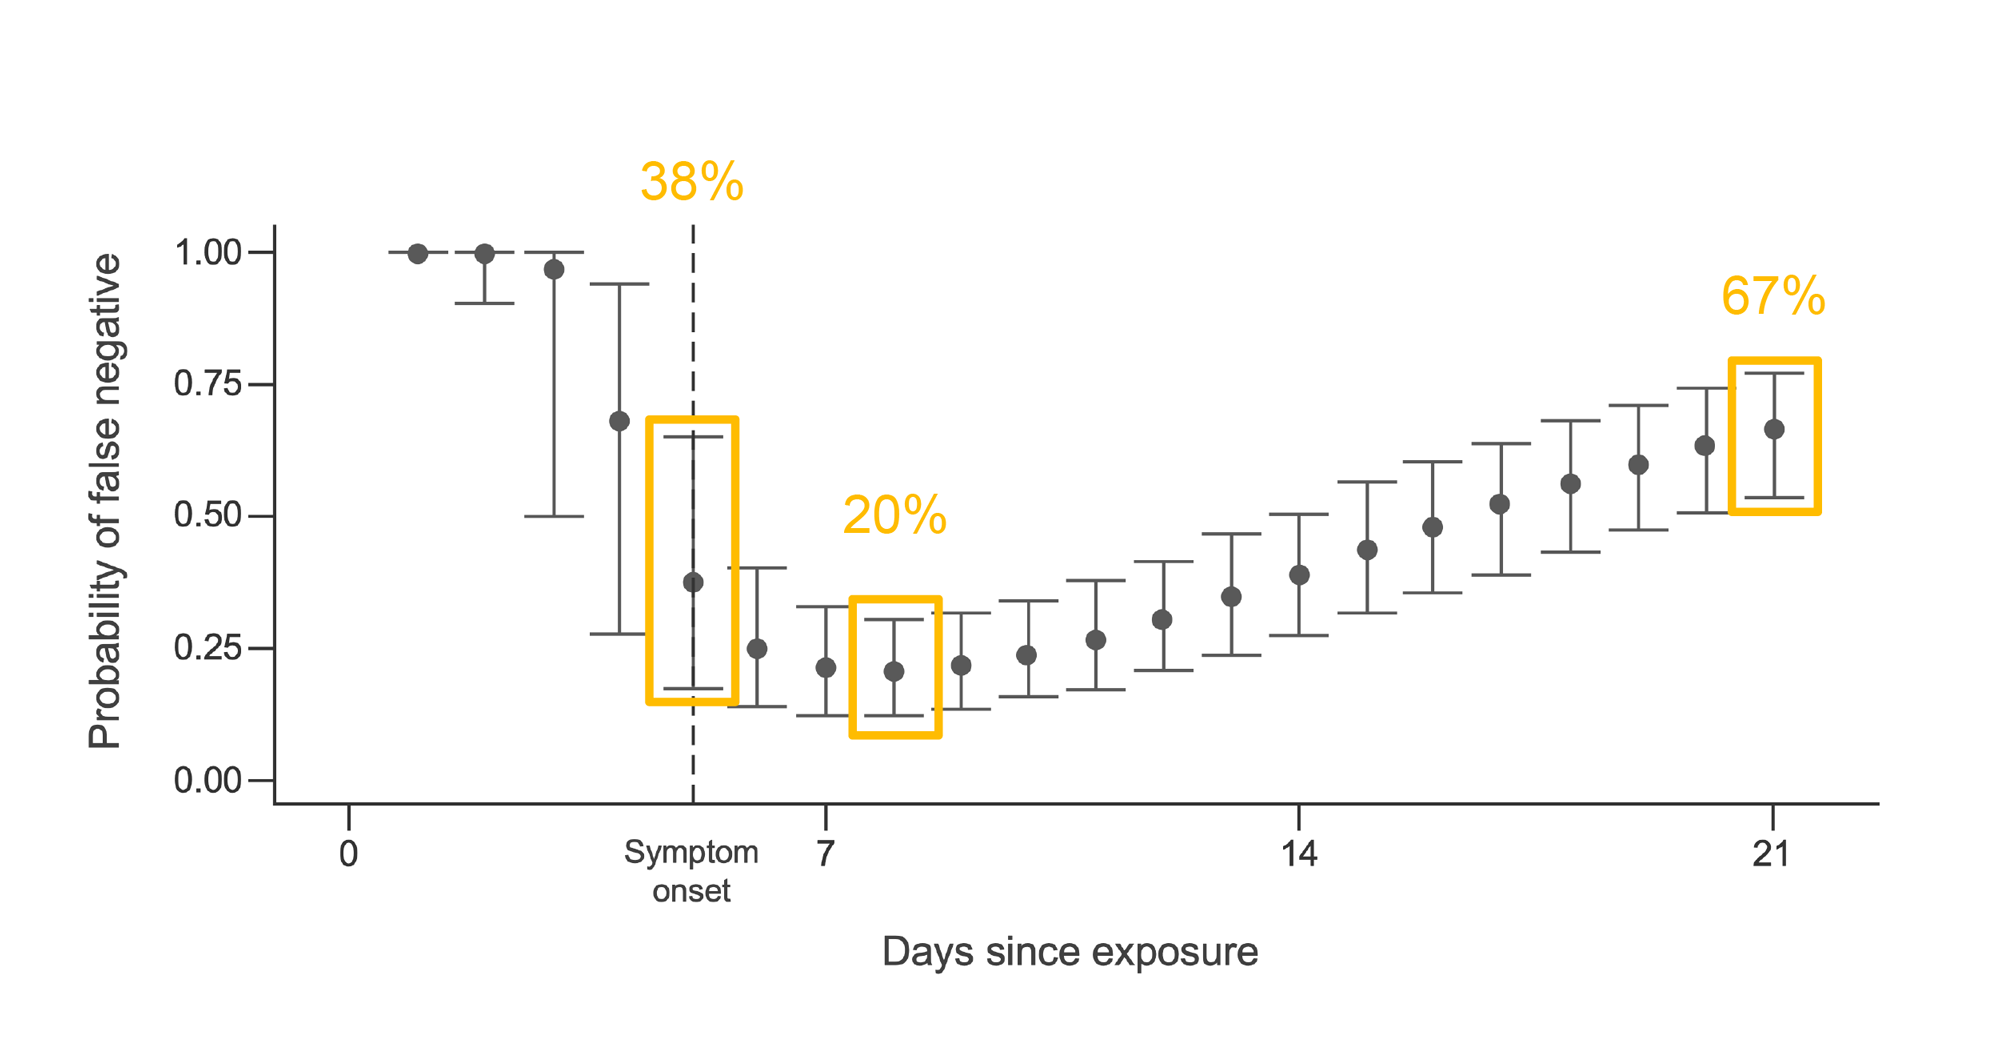 Probability of false negative test result on RT-PCR using a nasopharyngeal swab versus time since exposure to SARS-CoV-2. Graph.